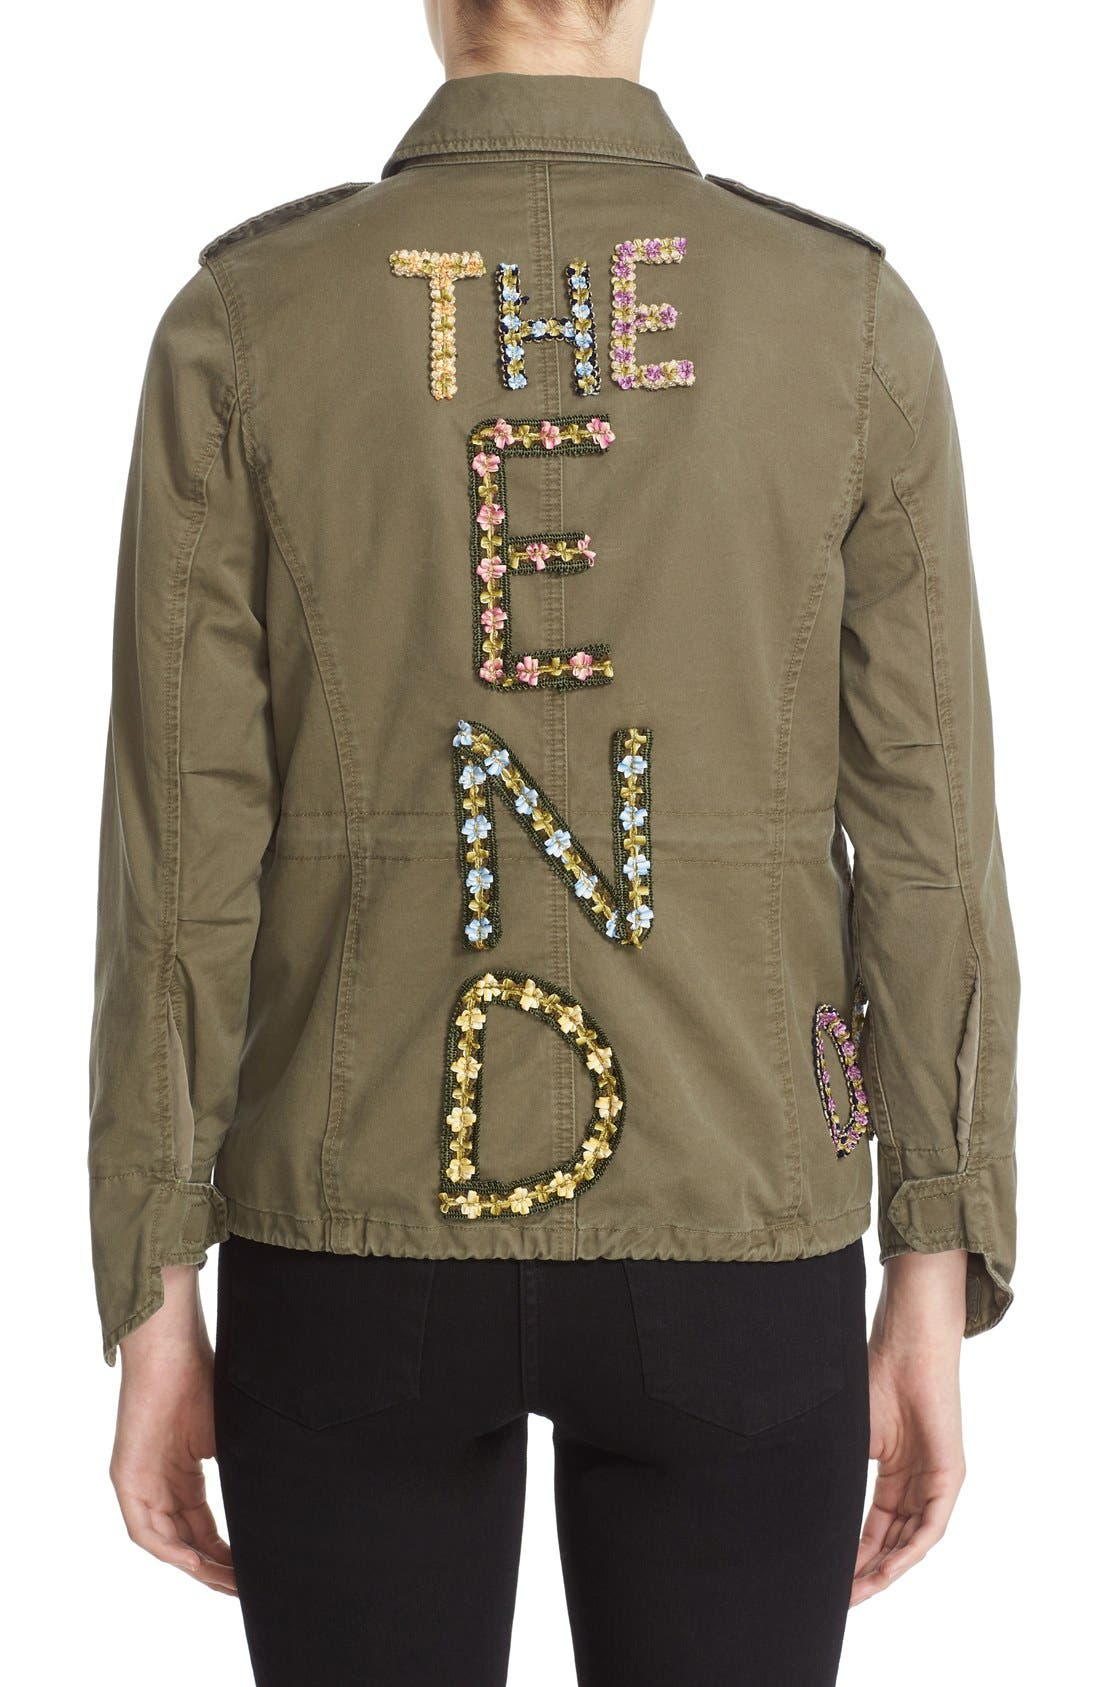 'The End' Embellished Military Jacket,                             Alternate thumbnail 3, color,                             250